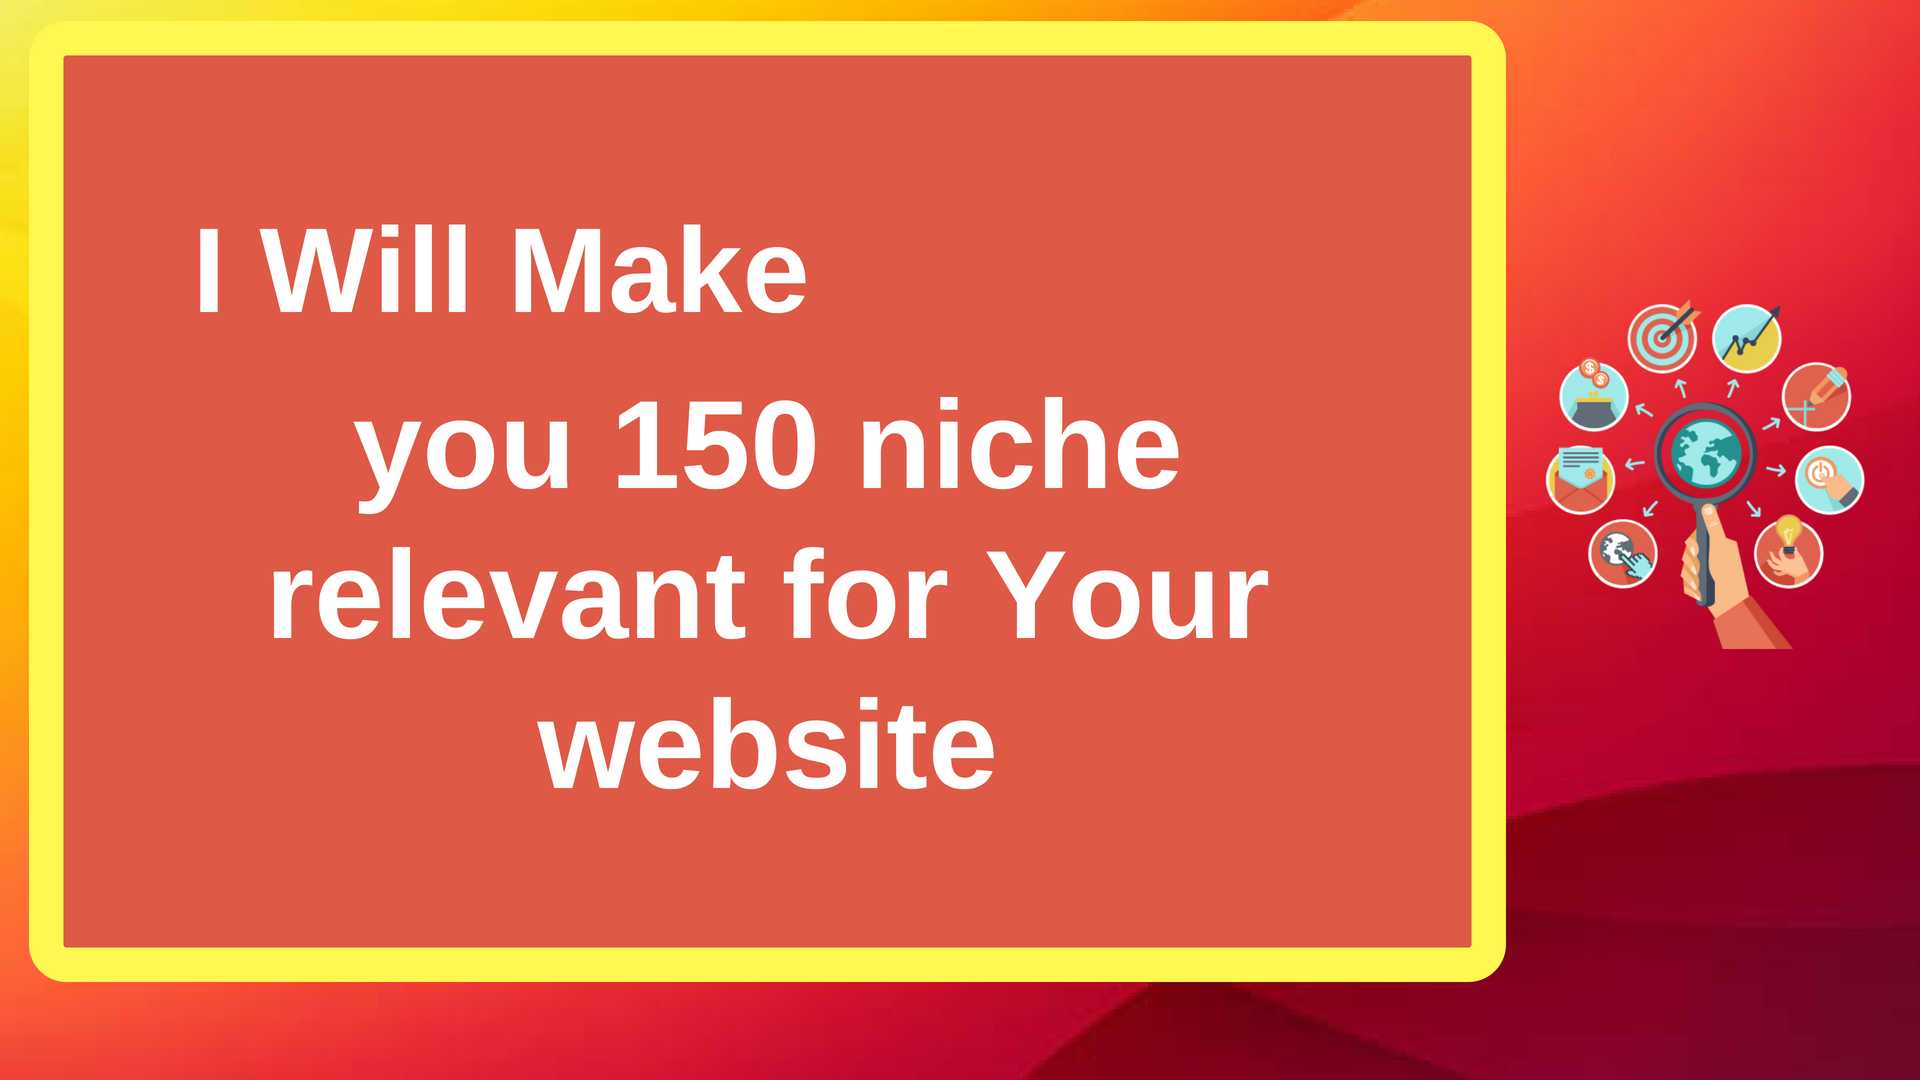 Make 150 niche relevant blog comments